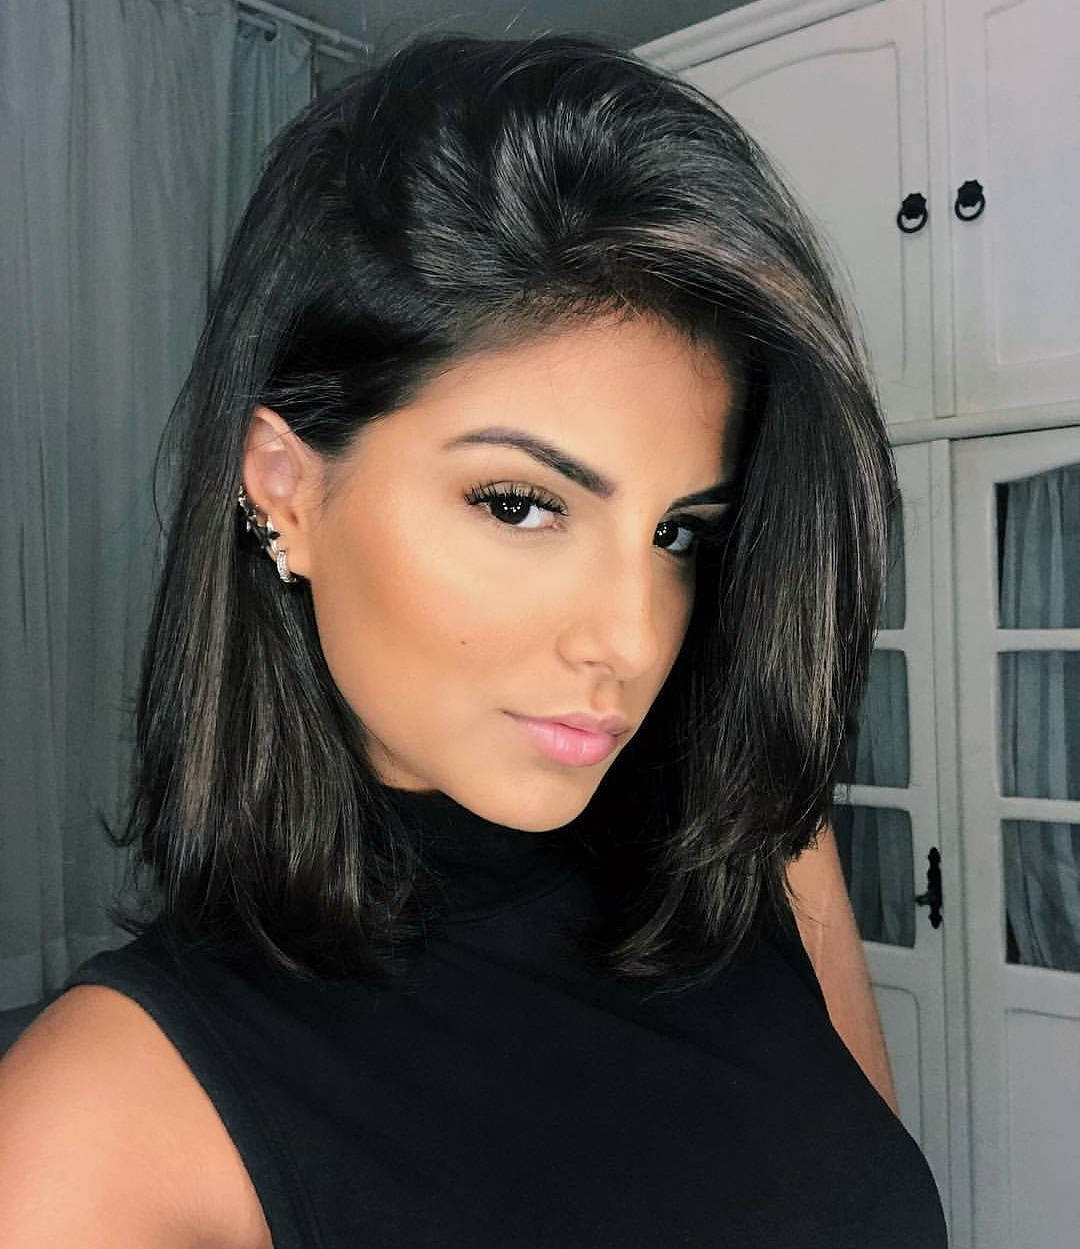 10 Super Cute And Easy Medium Hairstyles 2019 Intended For Recent Black Medium Haircuts (View 9 of 20)